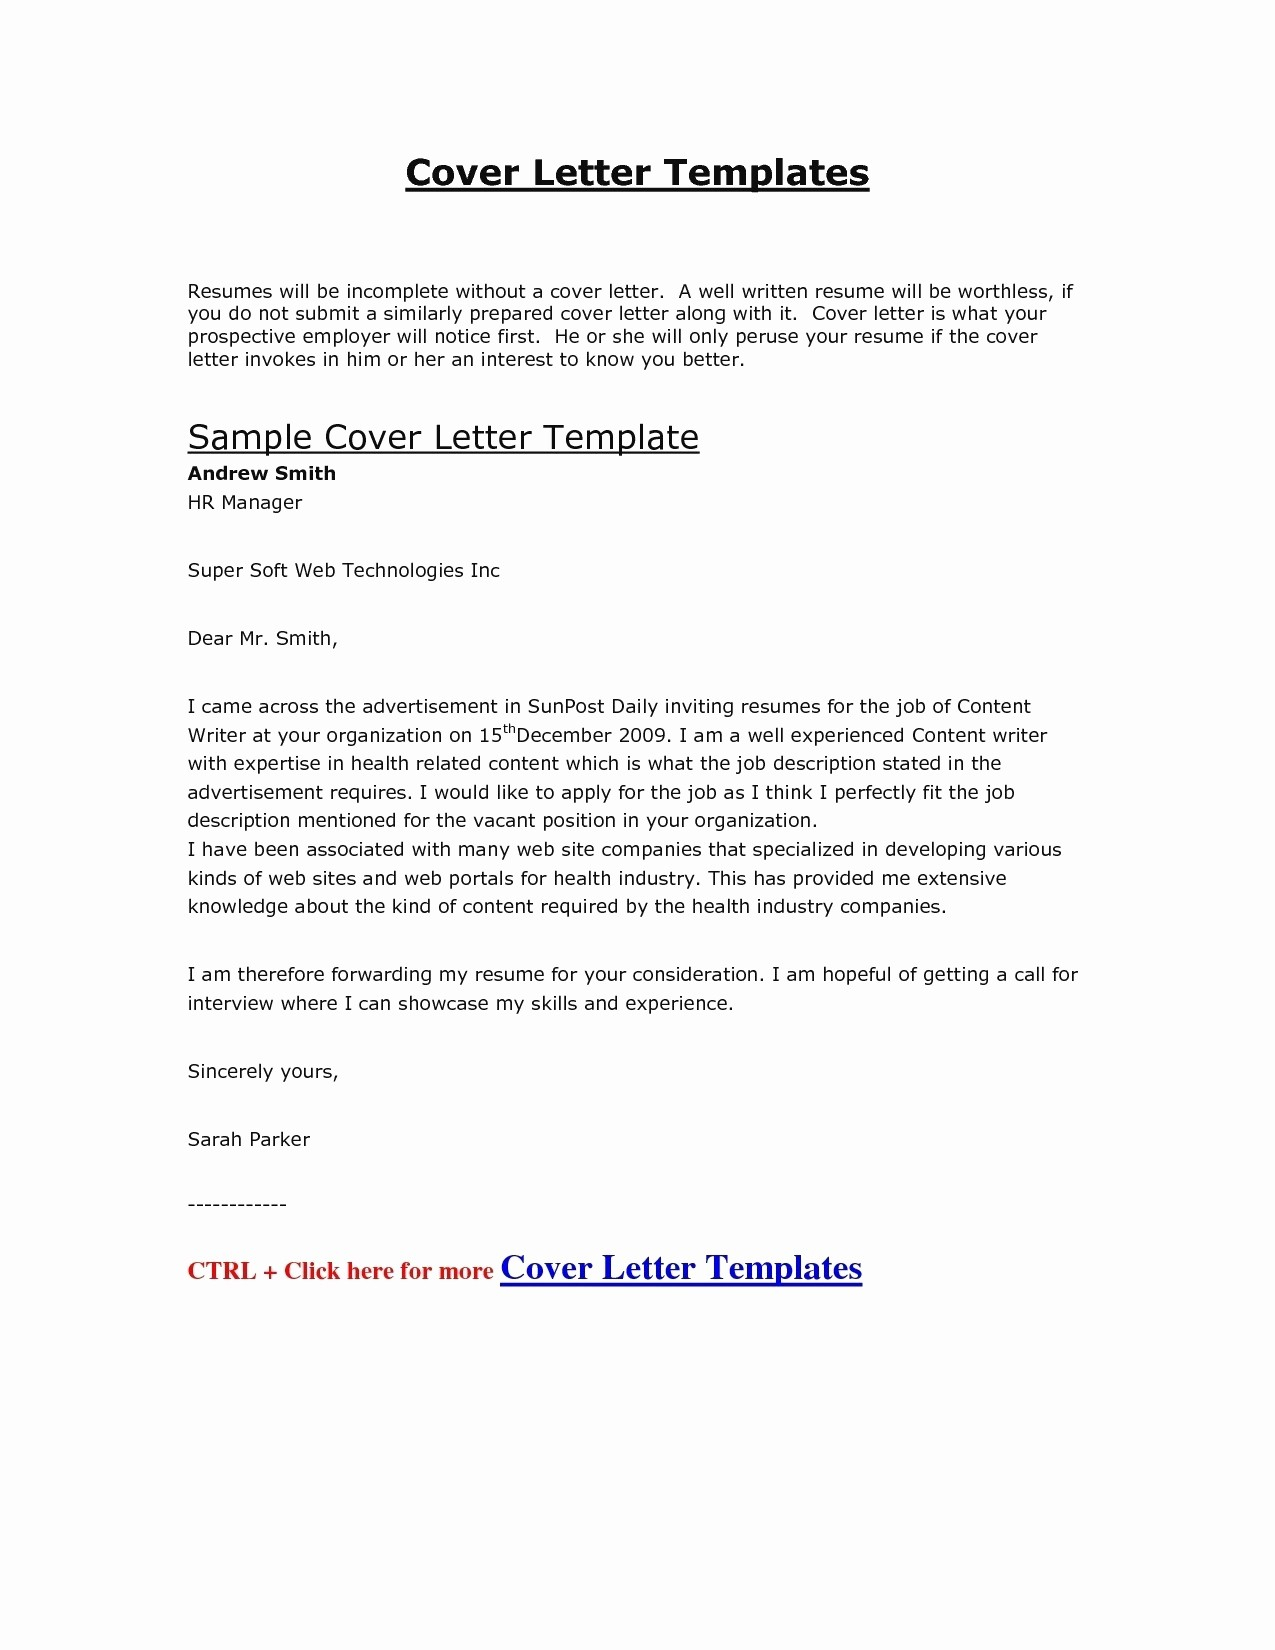 Formal Cover Letter Template